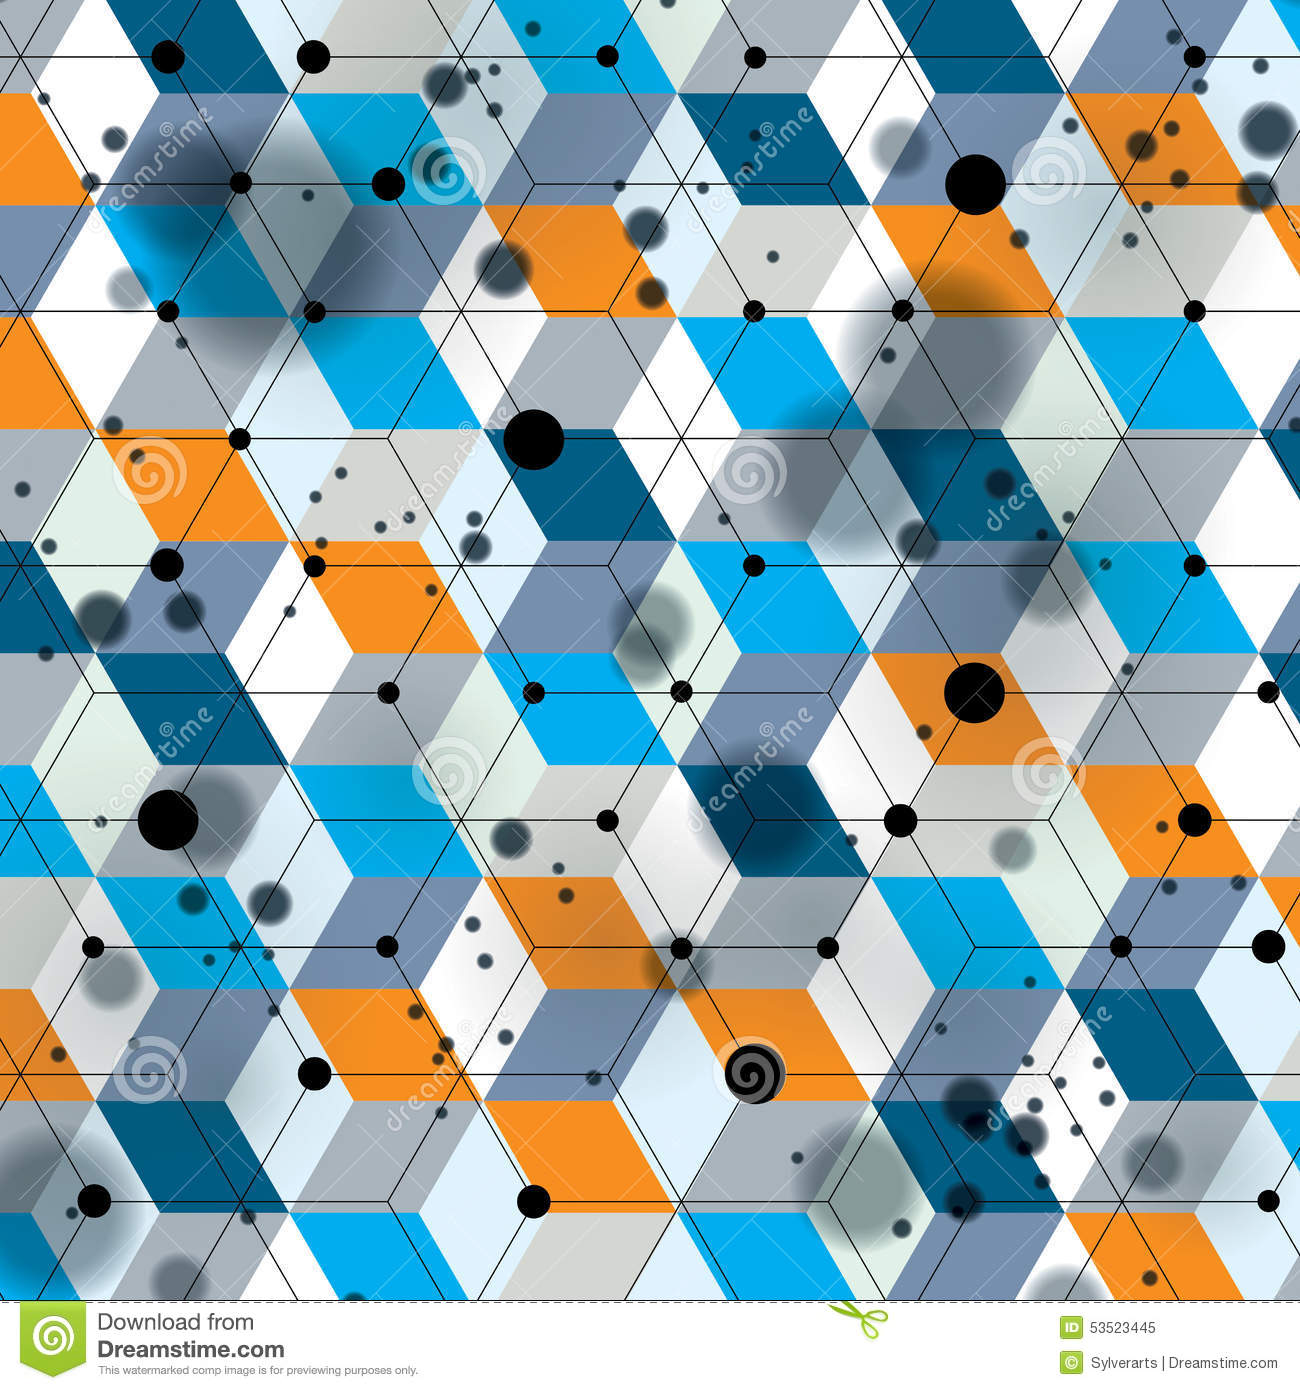 Colorful 3d spatial lattice covering, complicated op art background with geometric shapes, eps10. Science and technology theme.